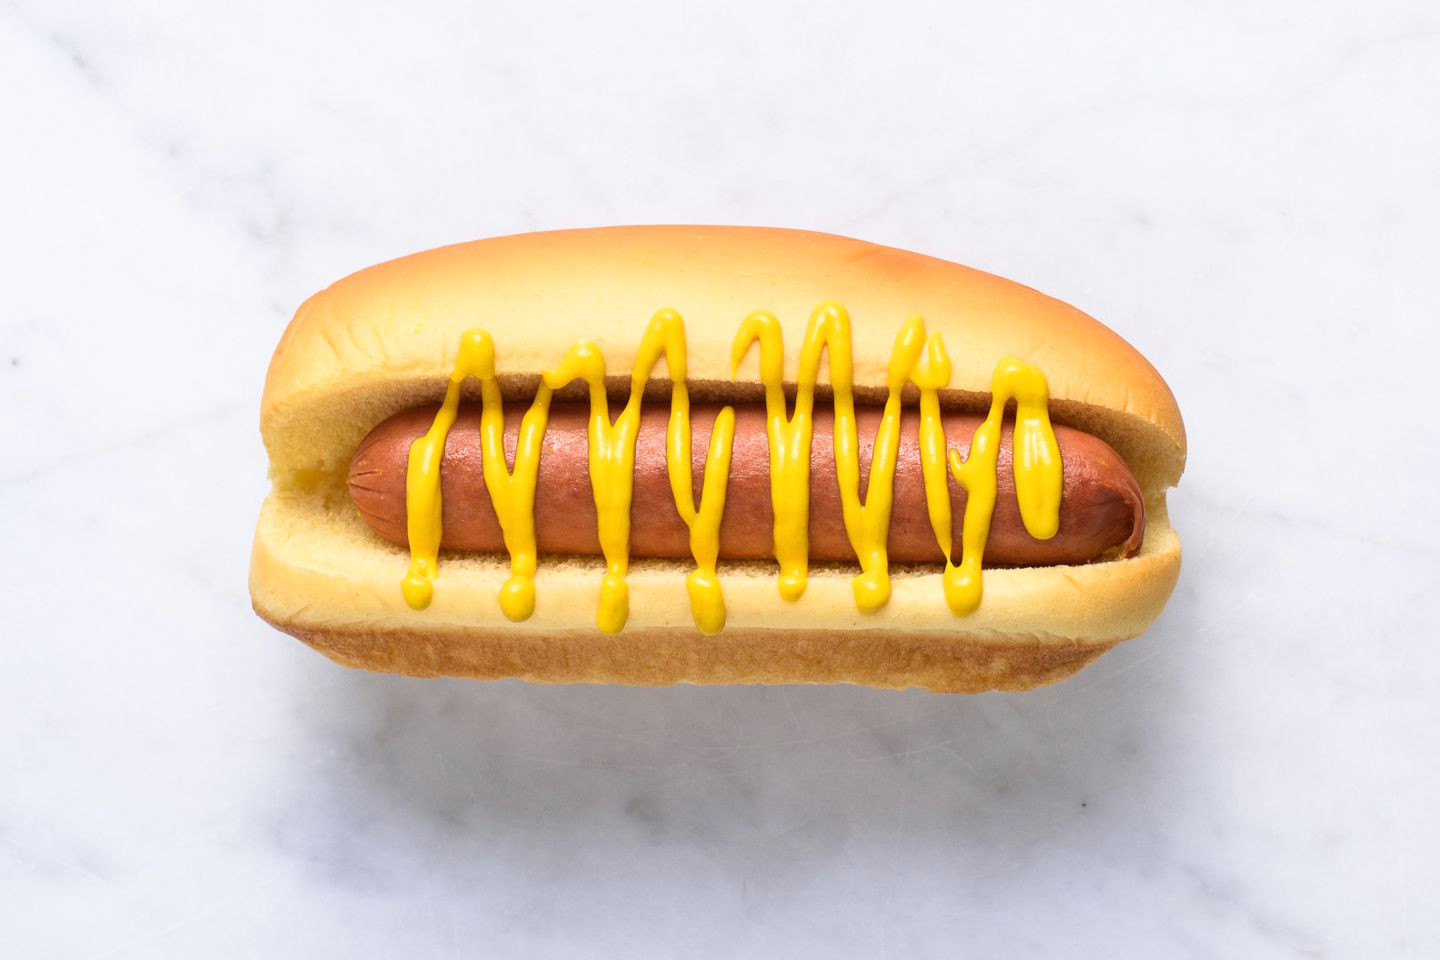 hot dog crop ab84bab6d58244e7be4c3c44413f4350 jpg